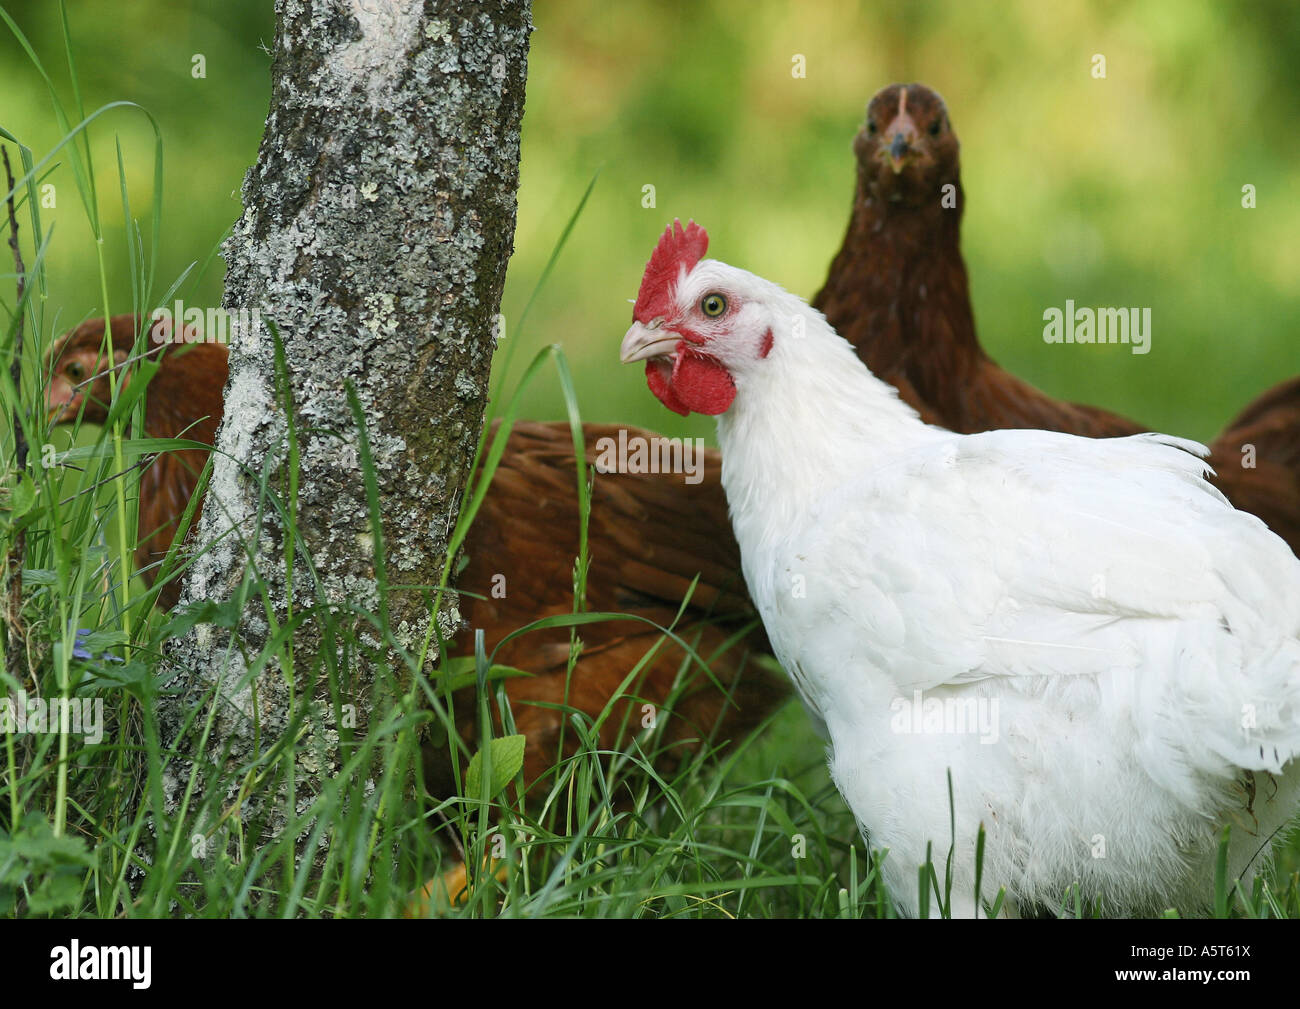 Hens - Stock Image